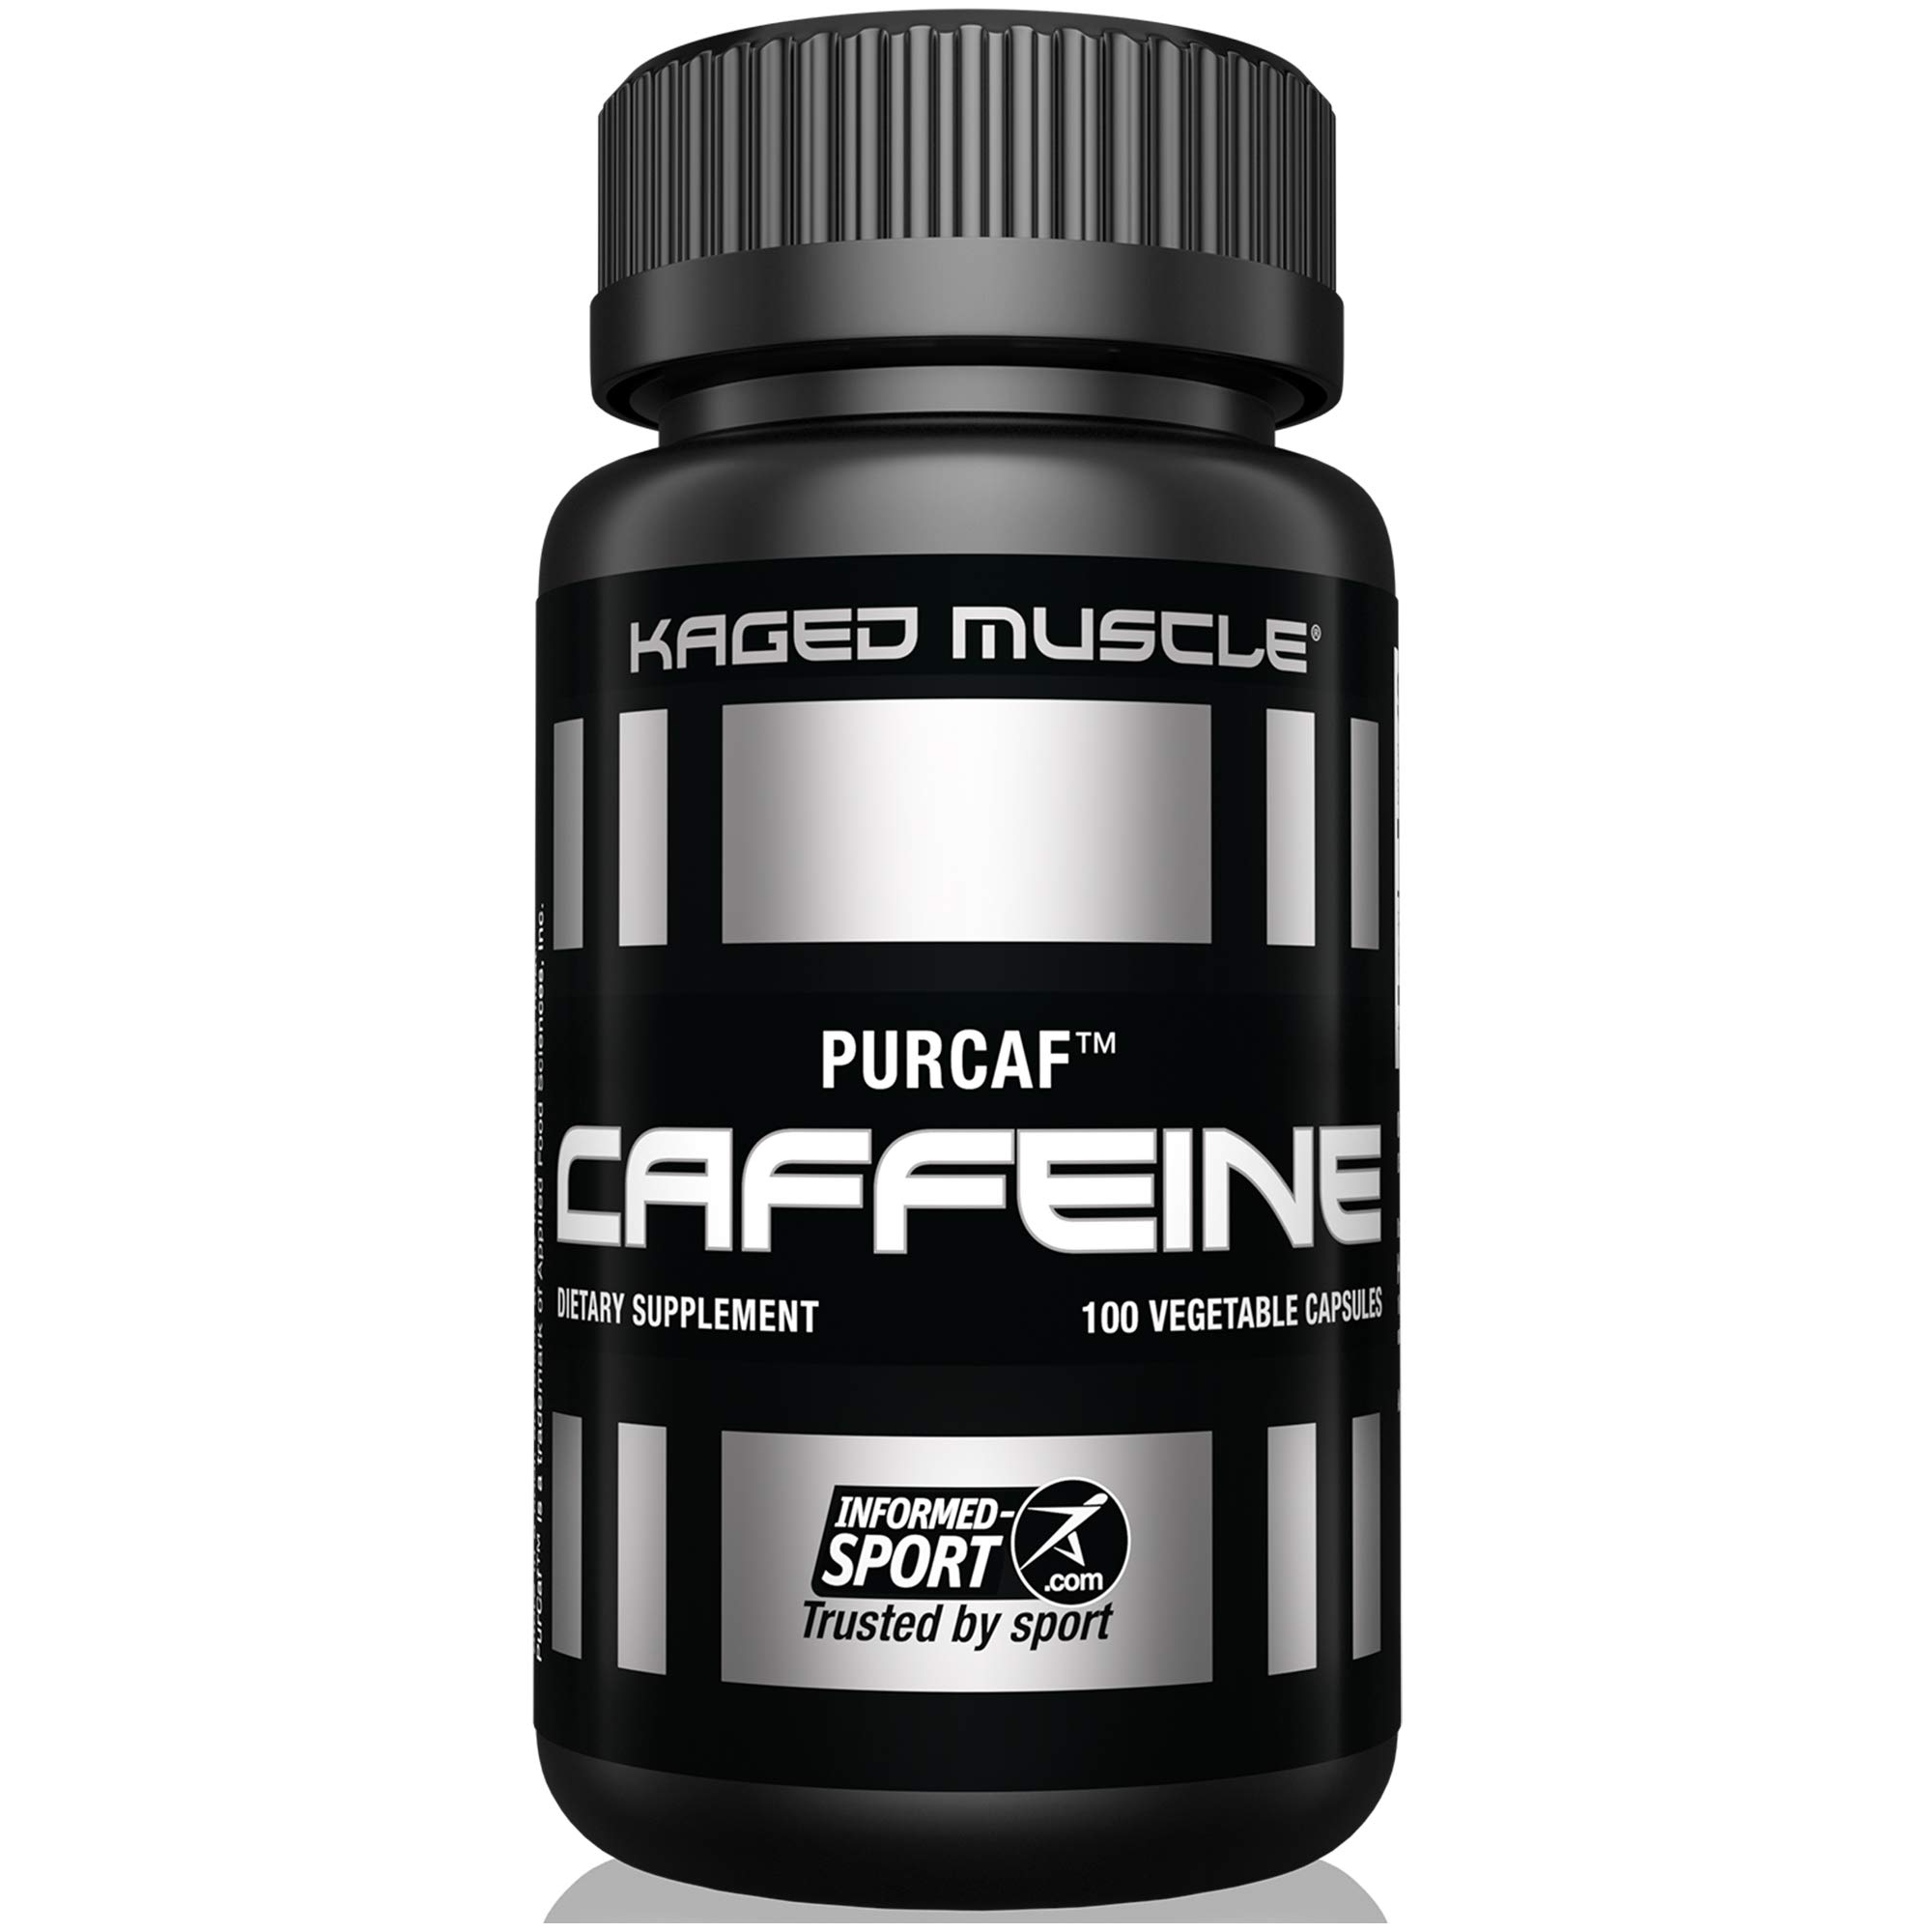 Kaged Muscle, PurCaf Organic Caffeine Capsules, Energy Boost, No Jitters, 90% Pure Caffeine, 100 Caffeine Pills by Kaged Muscle